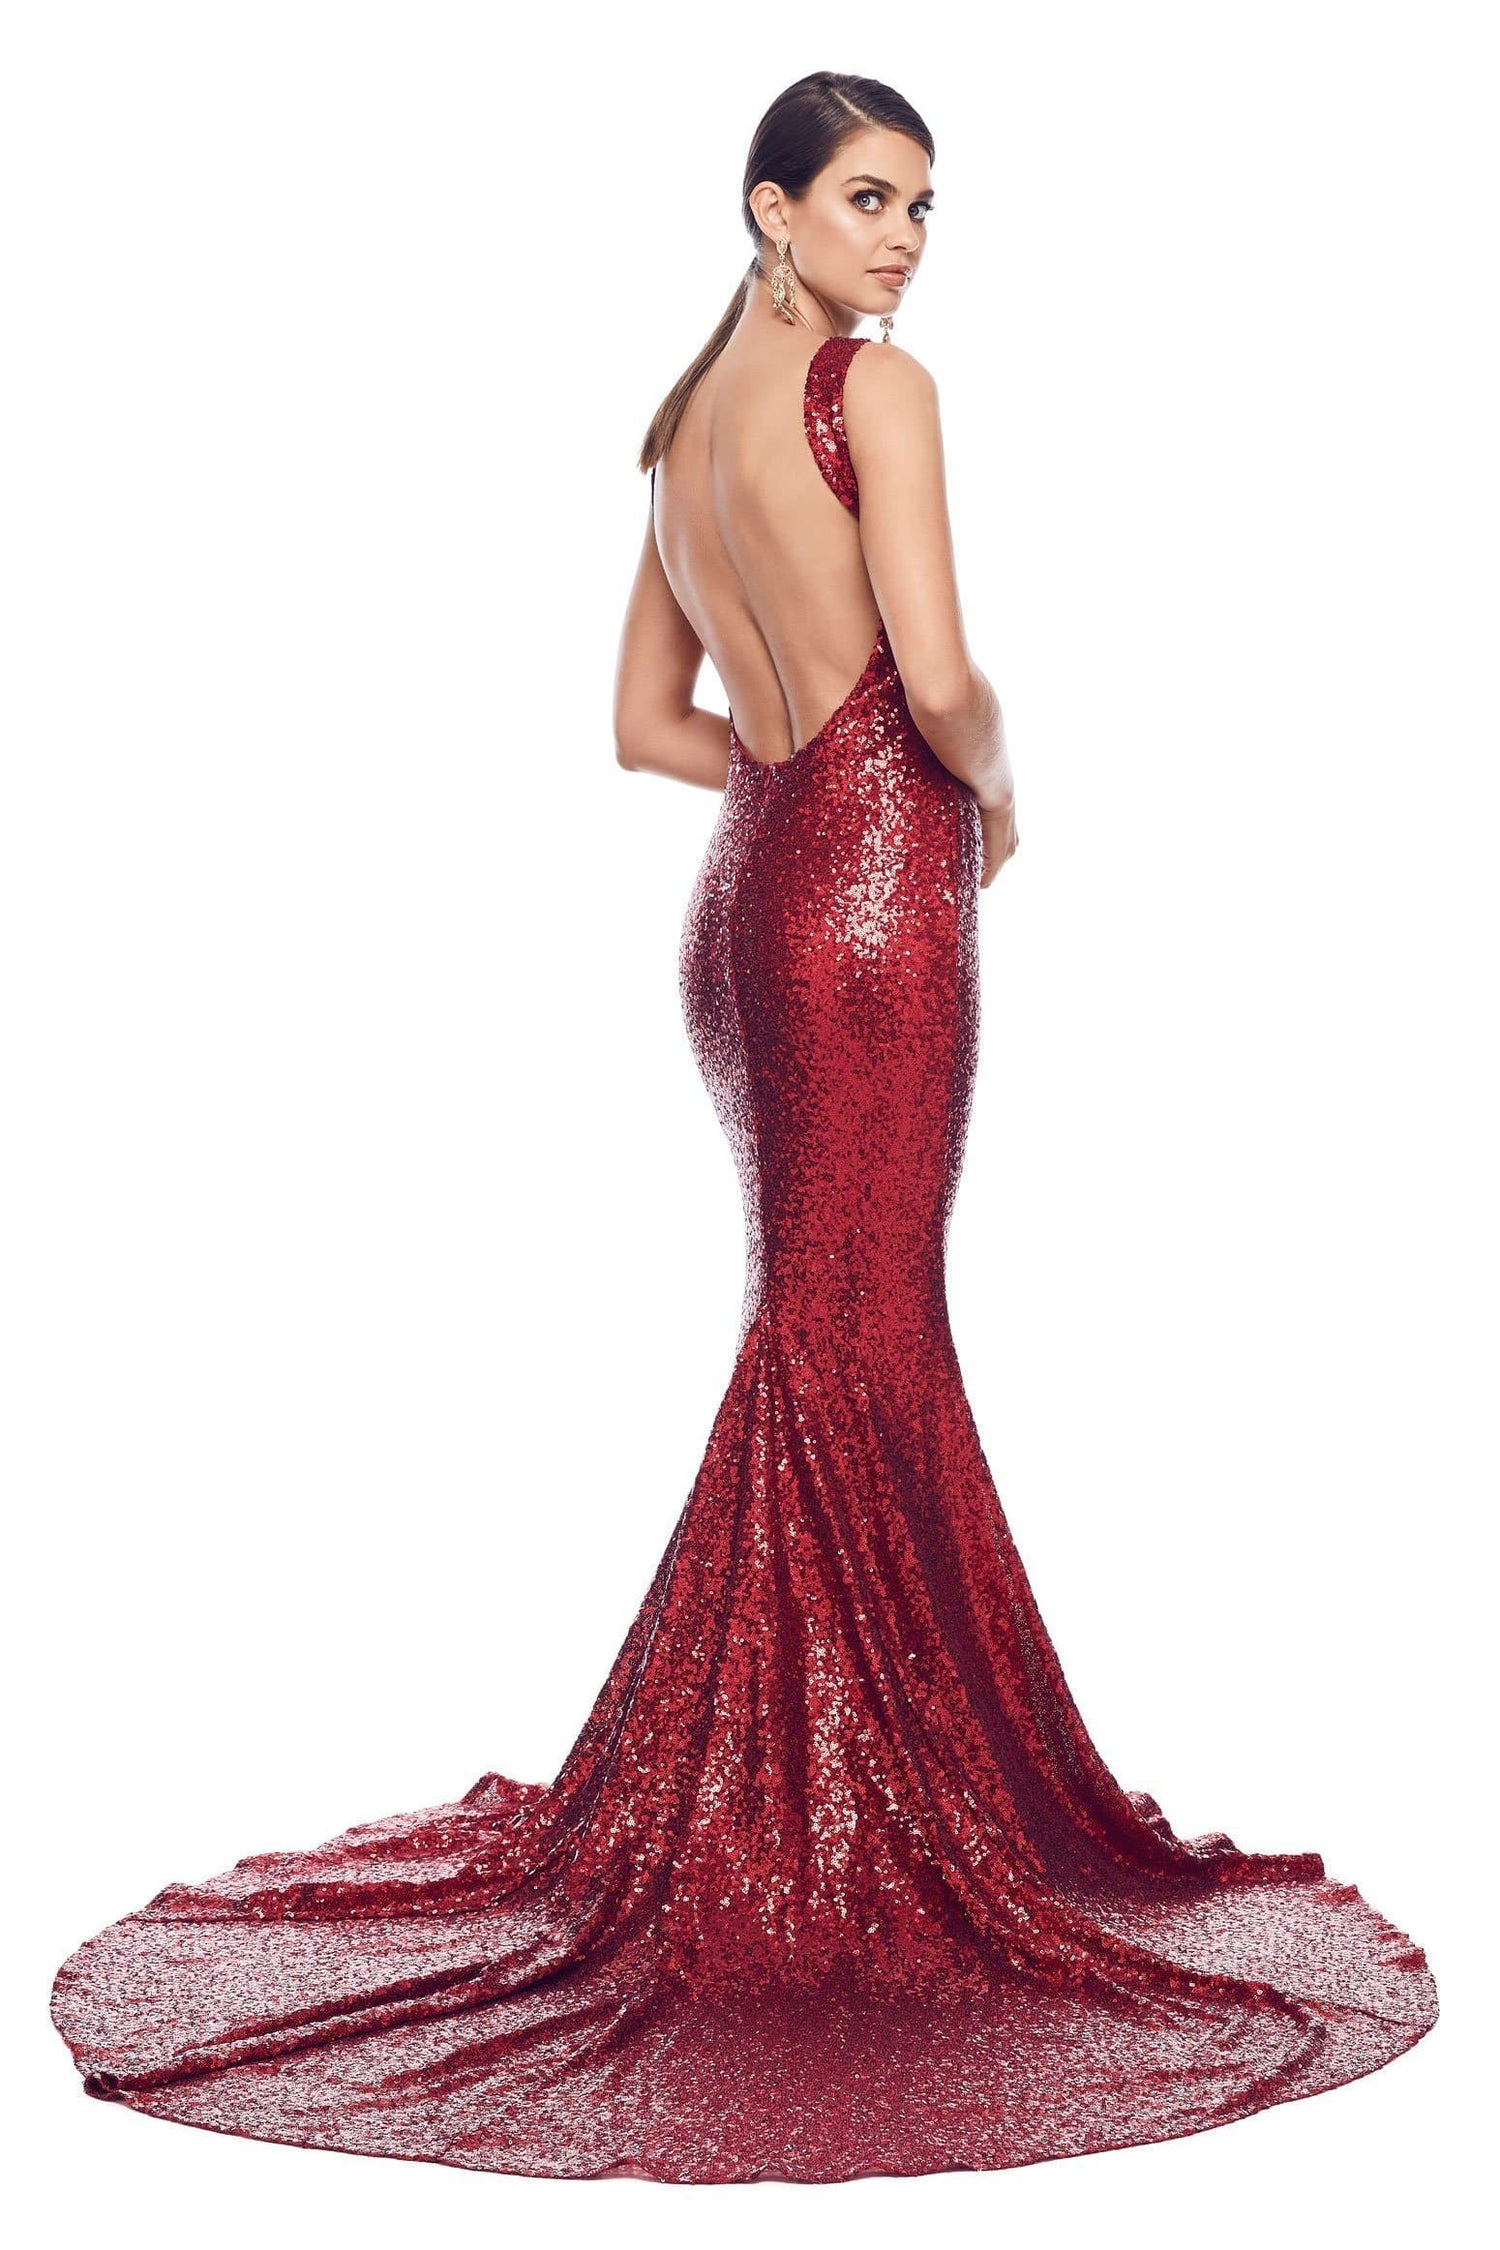 Stone Sequin Gown - Wine Red